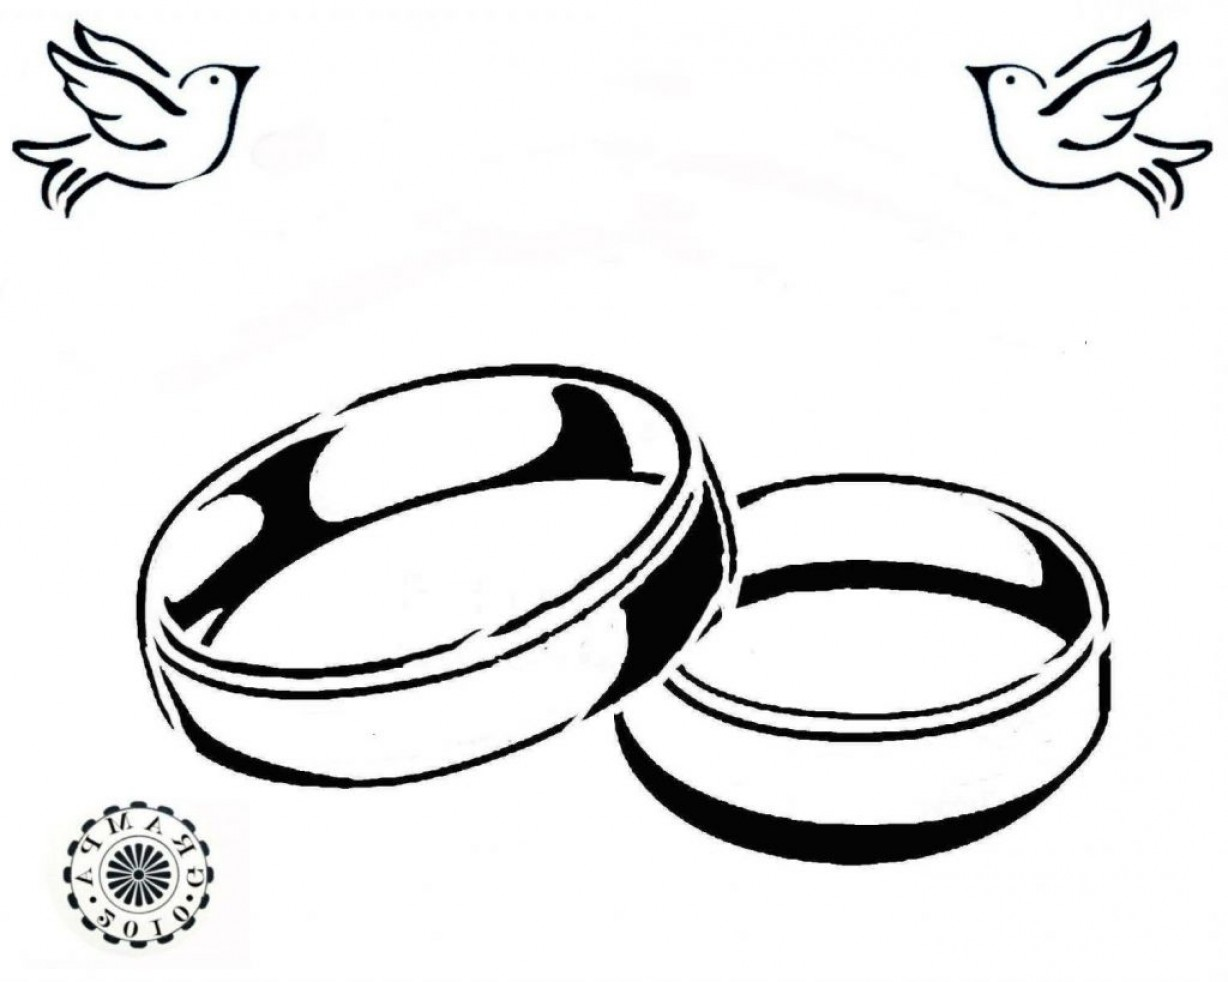 1228x982 Marriage Ring Drawings Jerezwine Jewelry Functional Wedding Ring